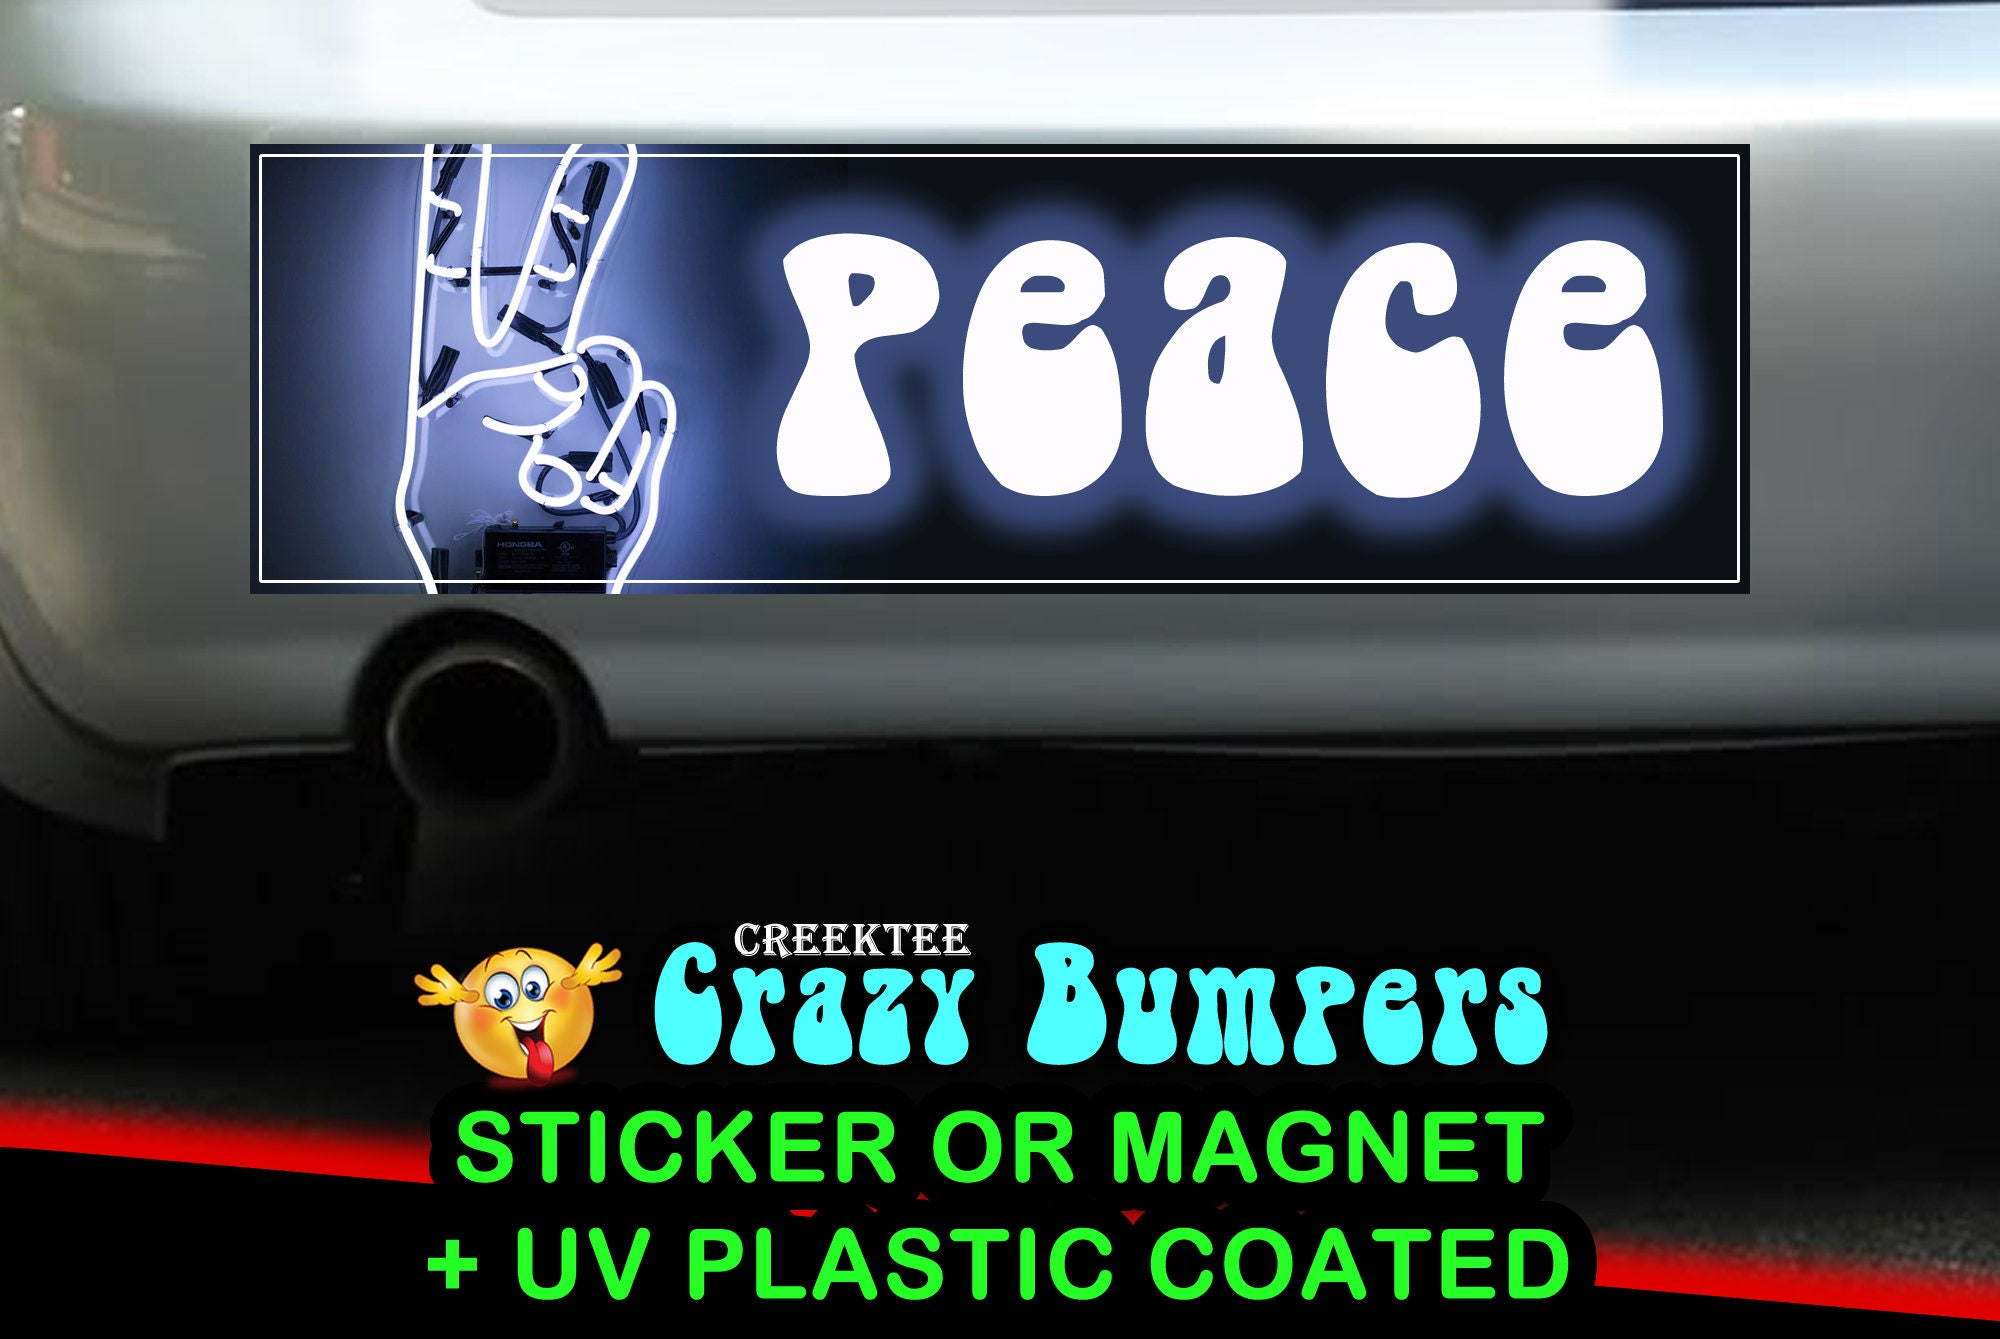 $9.74 - Peace 10 x 3 Bumper Sticker or Magnet - Custom changes and orders welcomed!